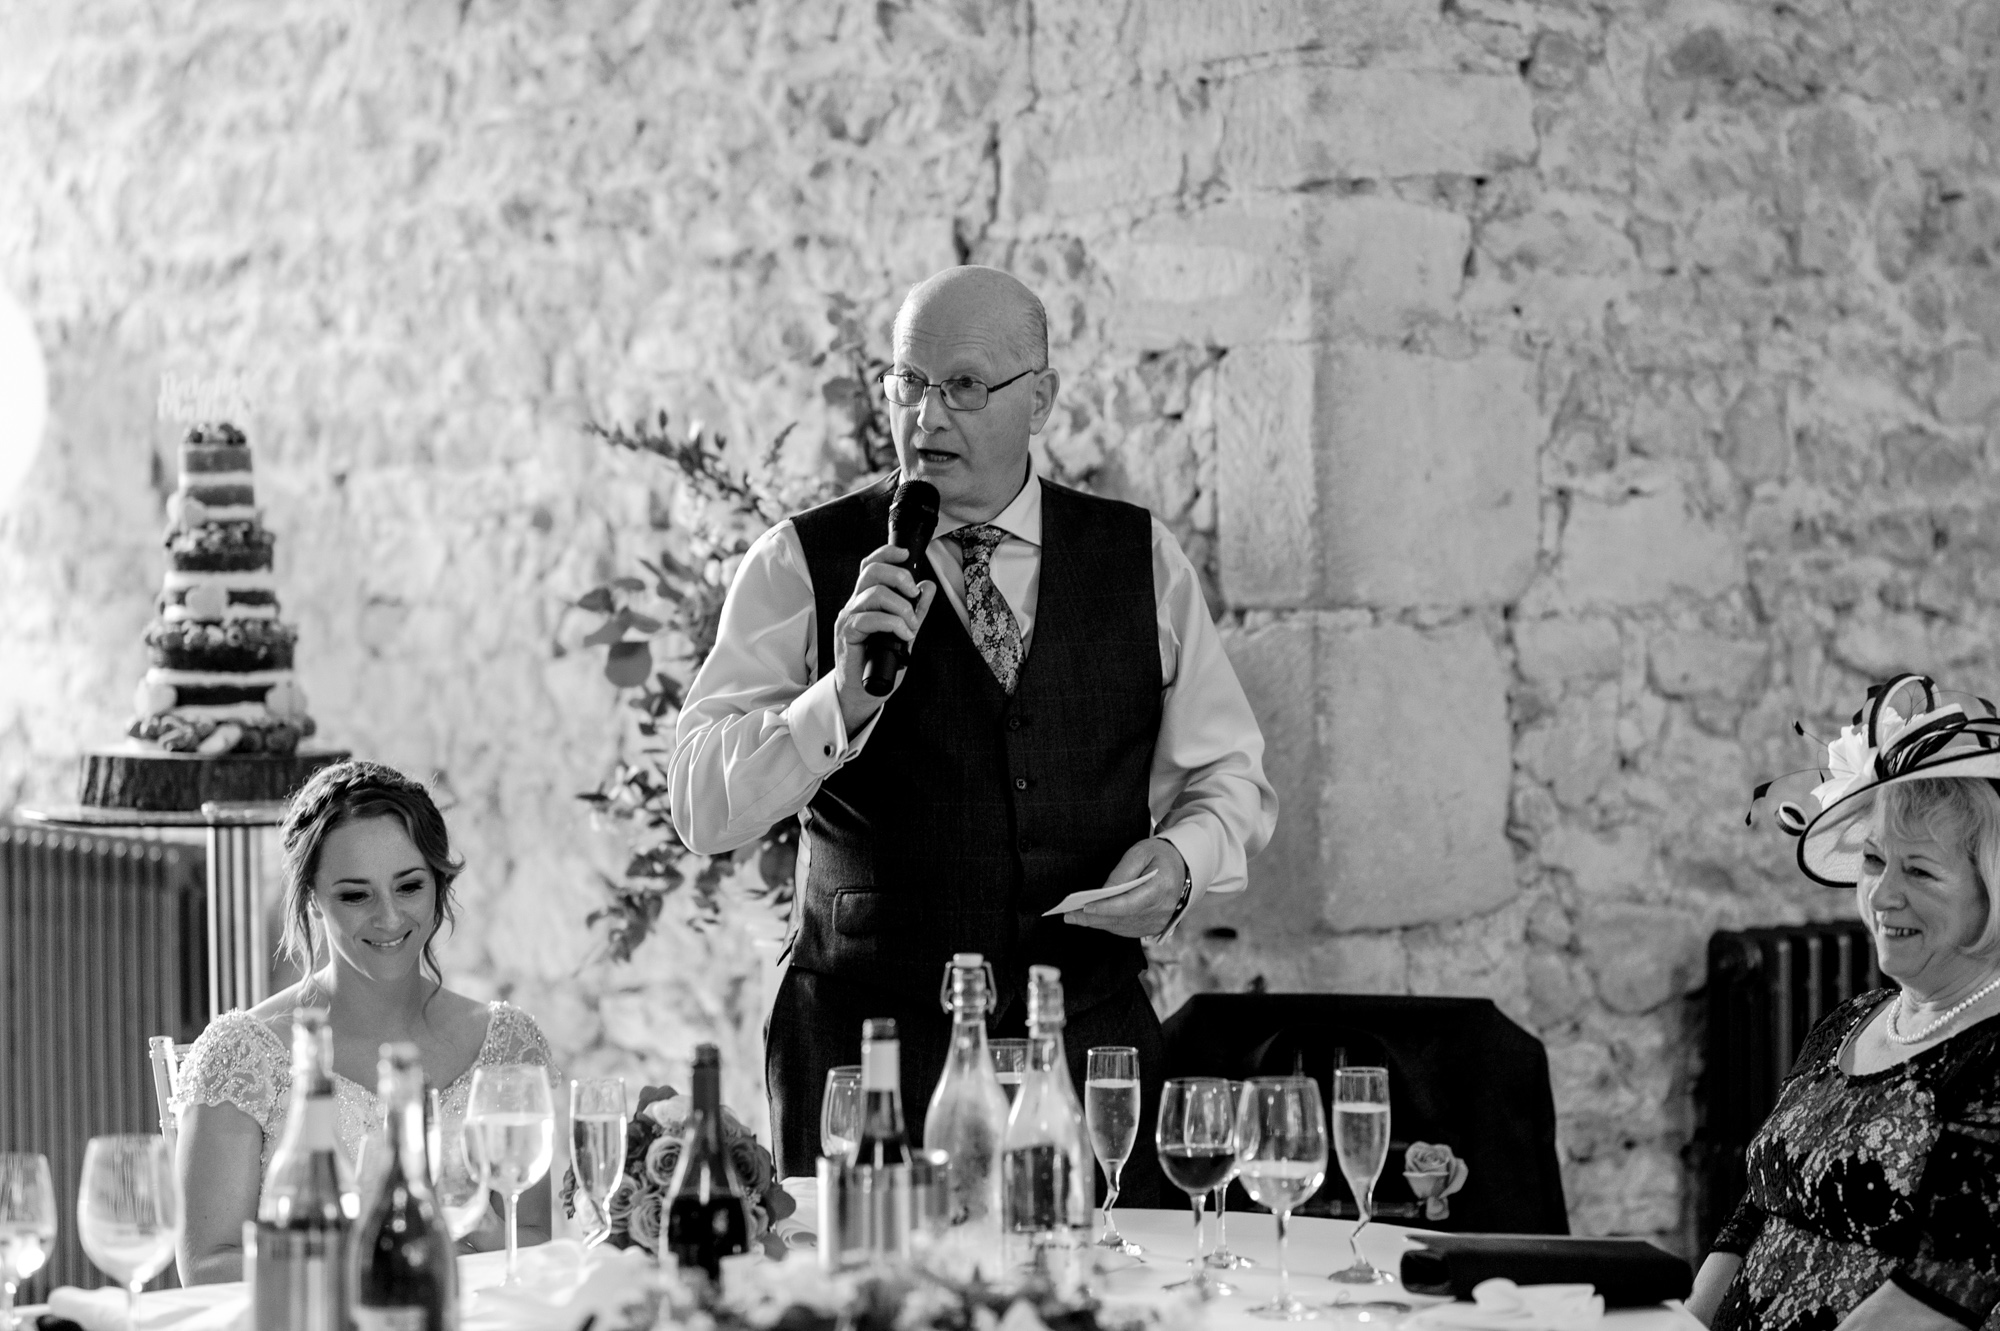 Notley Barn Wedding 26.10.18 23.jpg